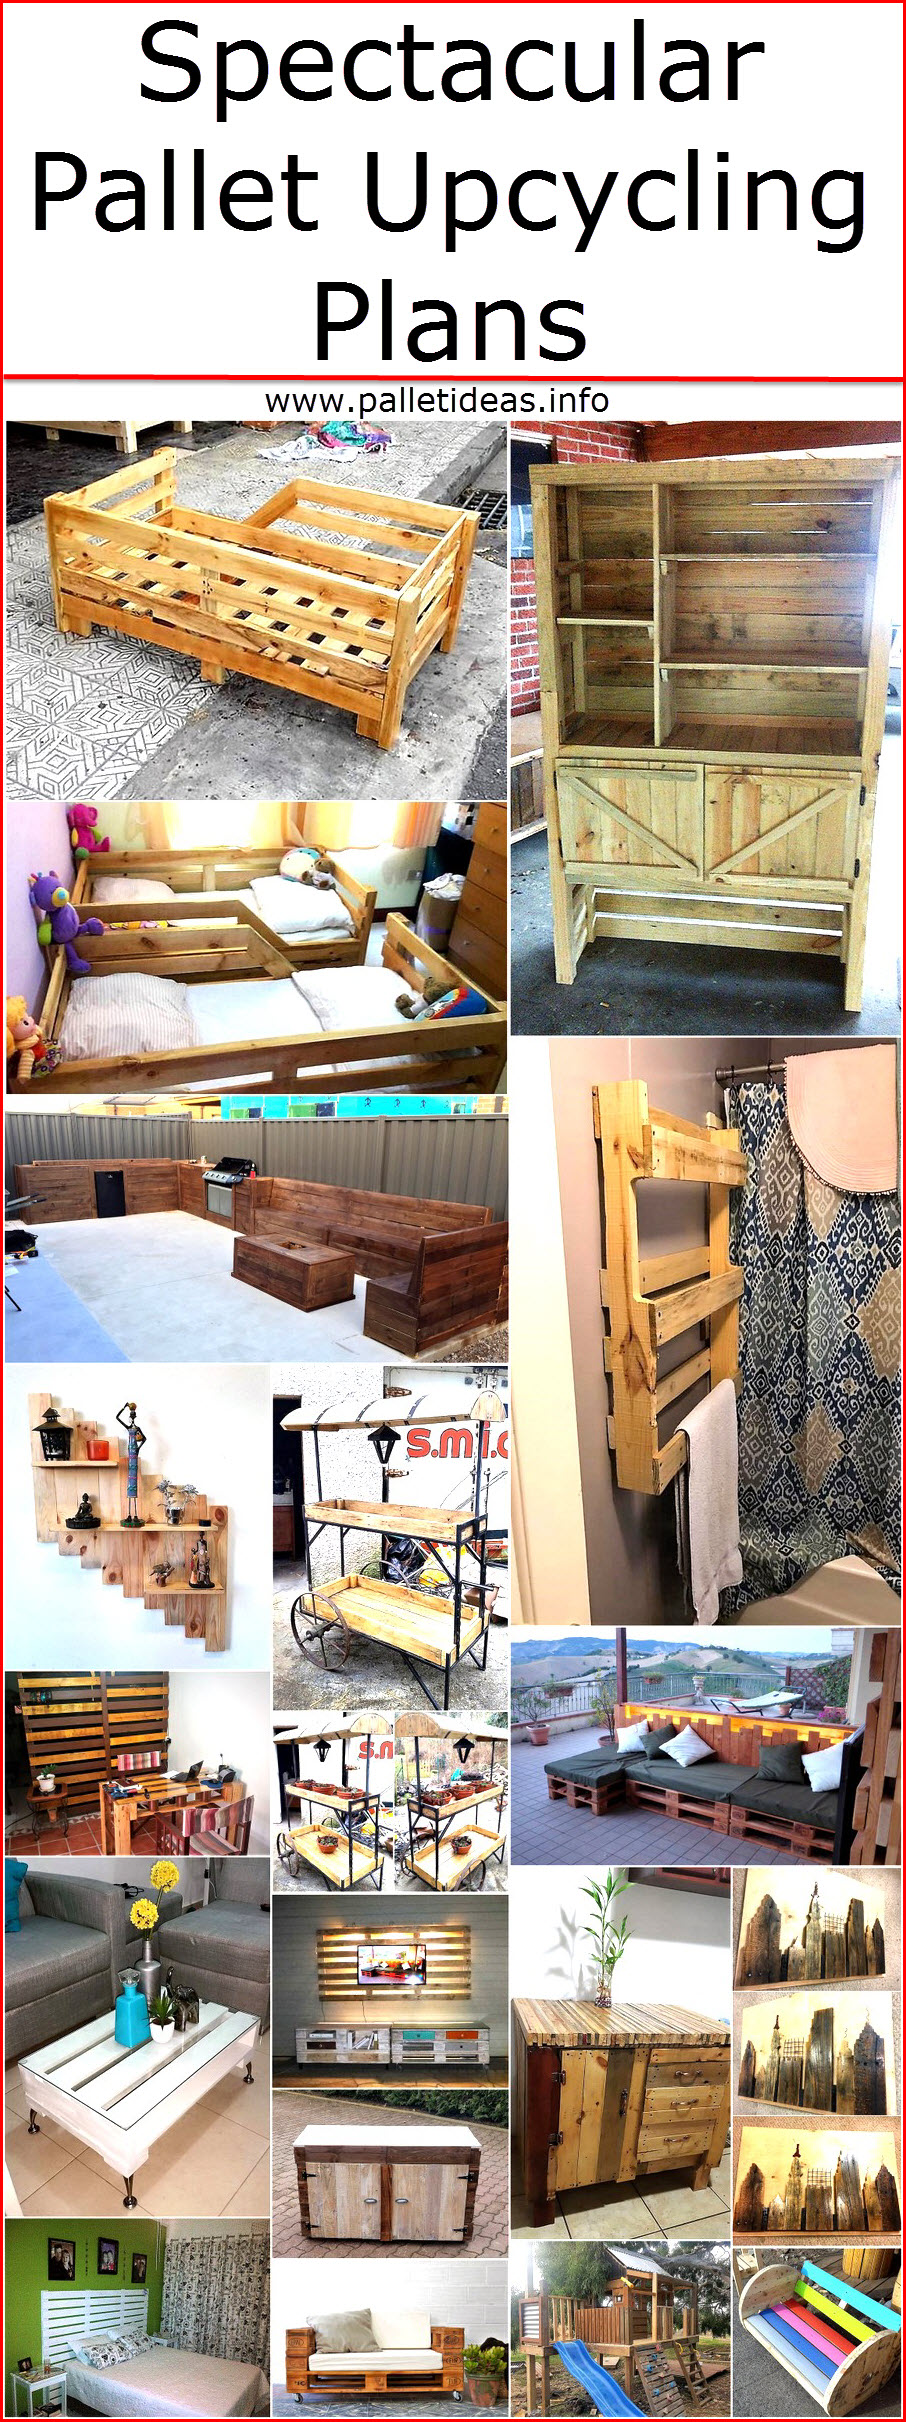 Spectacular Pallet Upcycling Plans